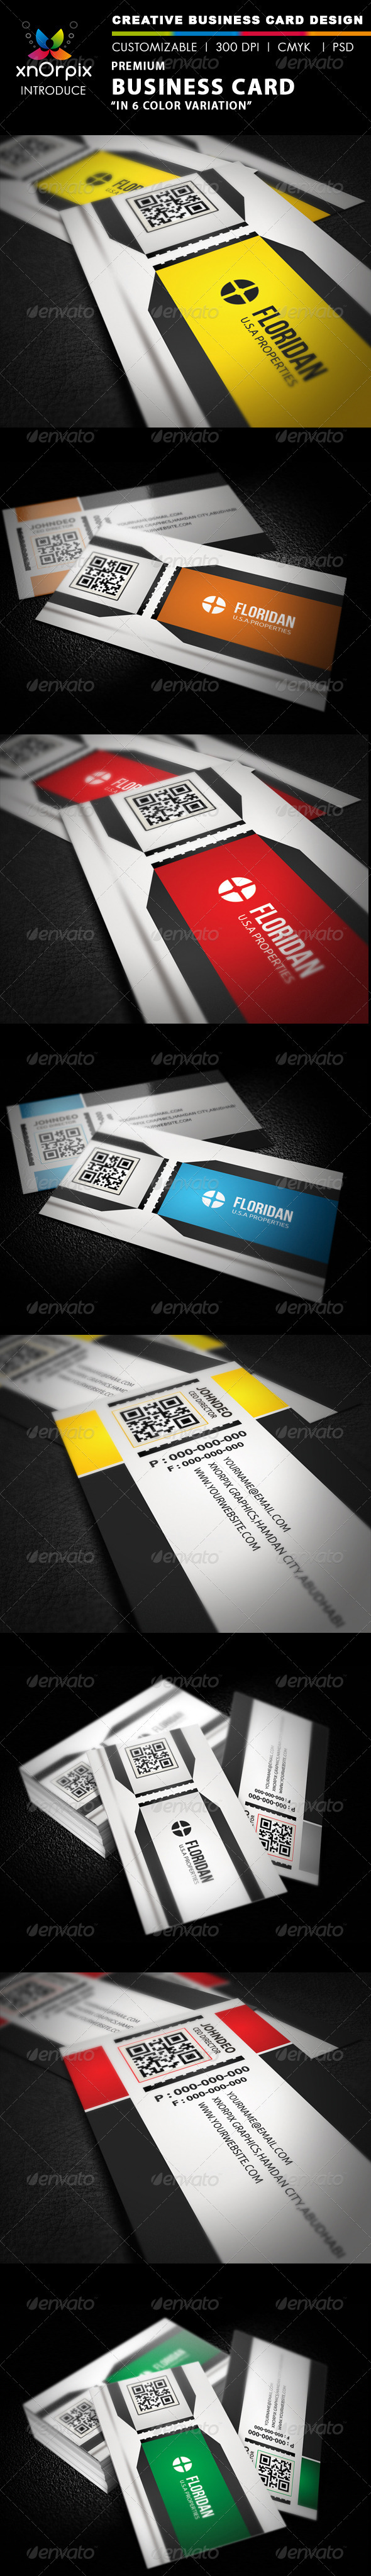 Premium Business Card - Business Cards Print Templates